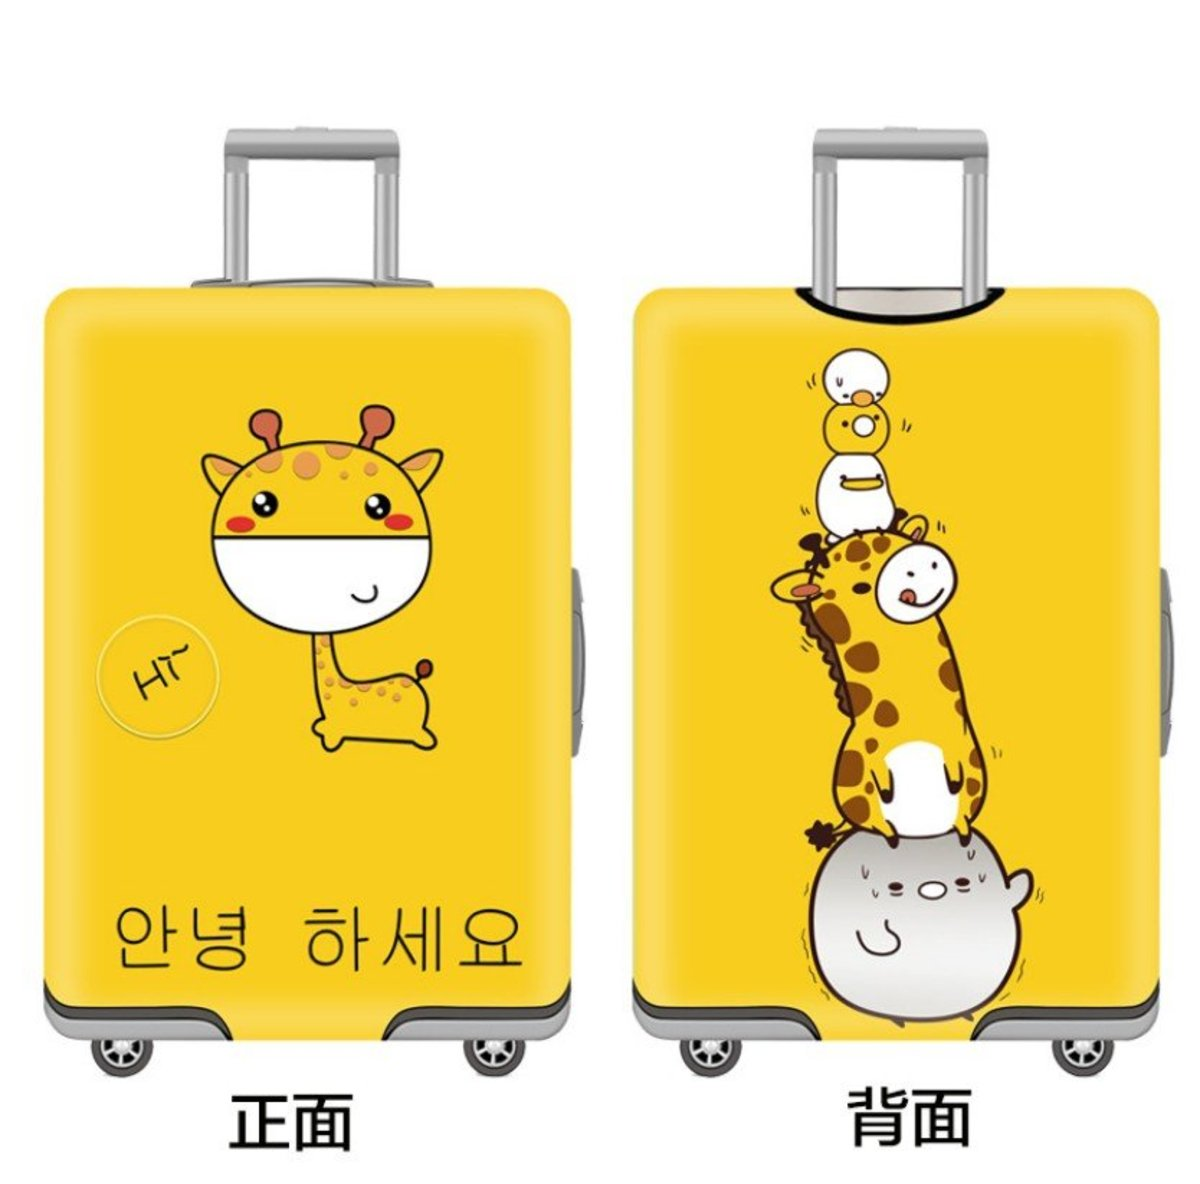 Elastic Travel Luggage Protective Cover (Yellow Giraffe, size L)